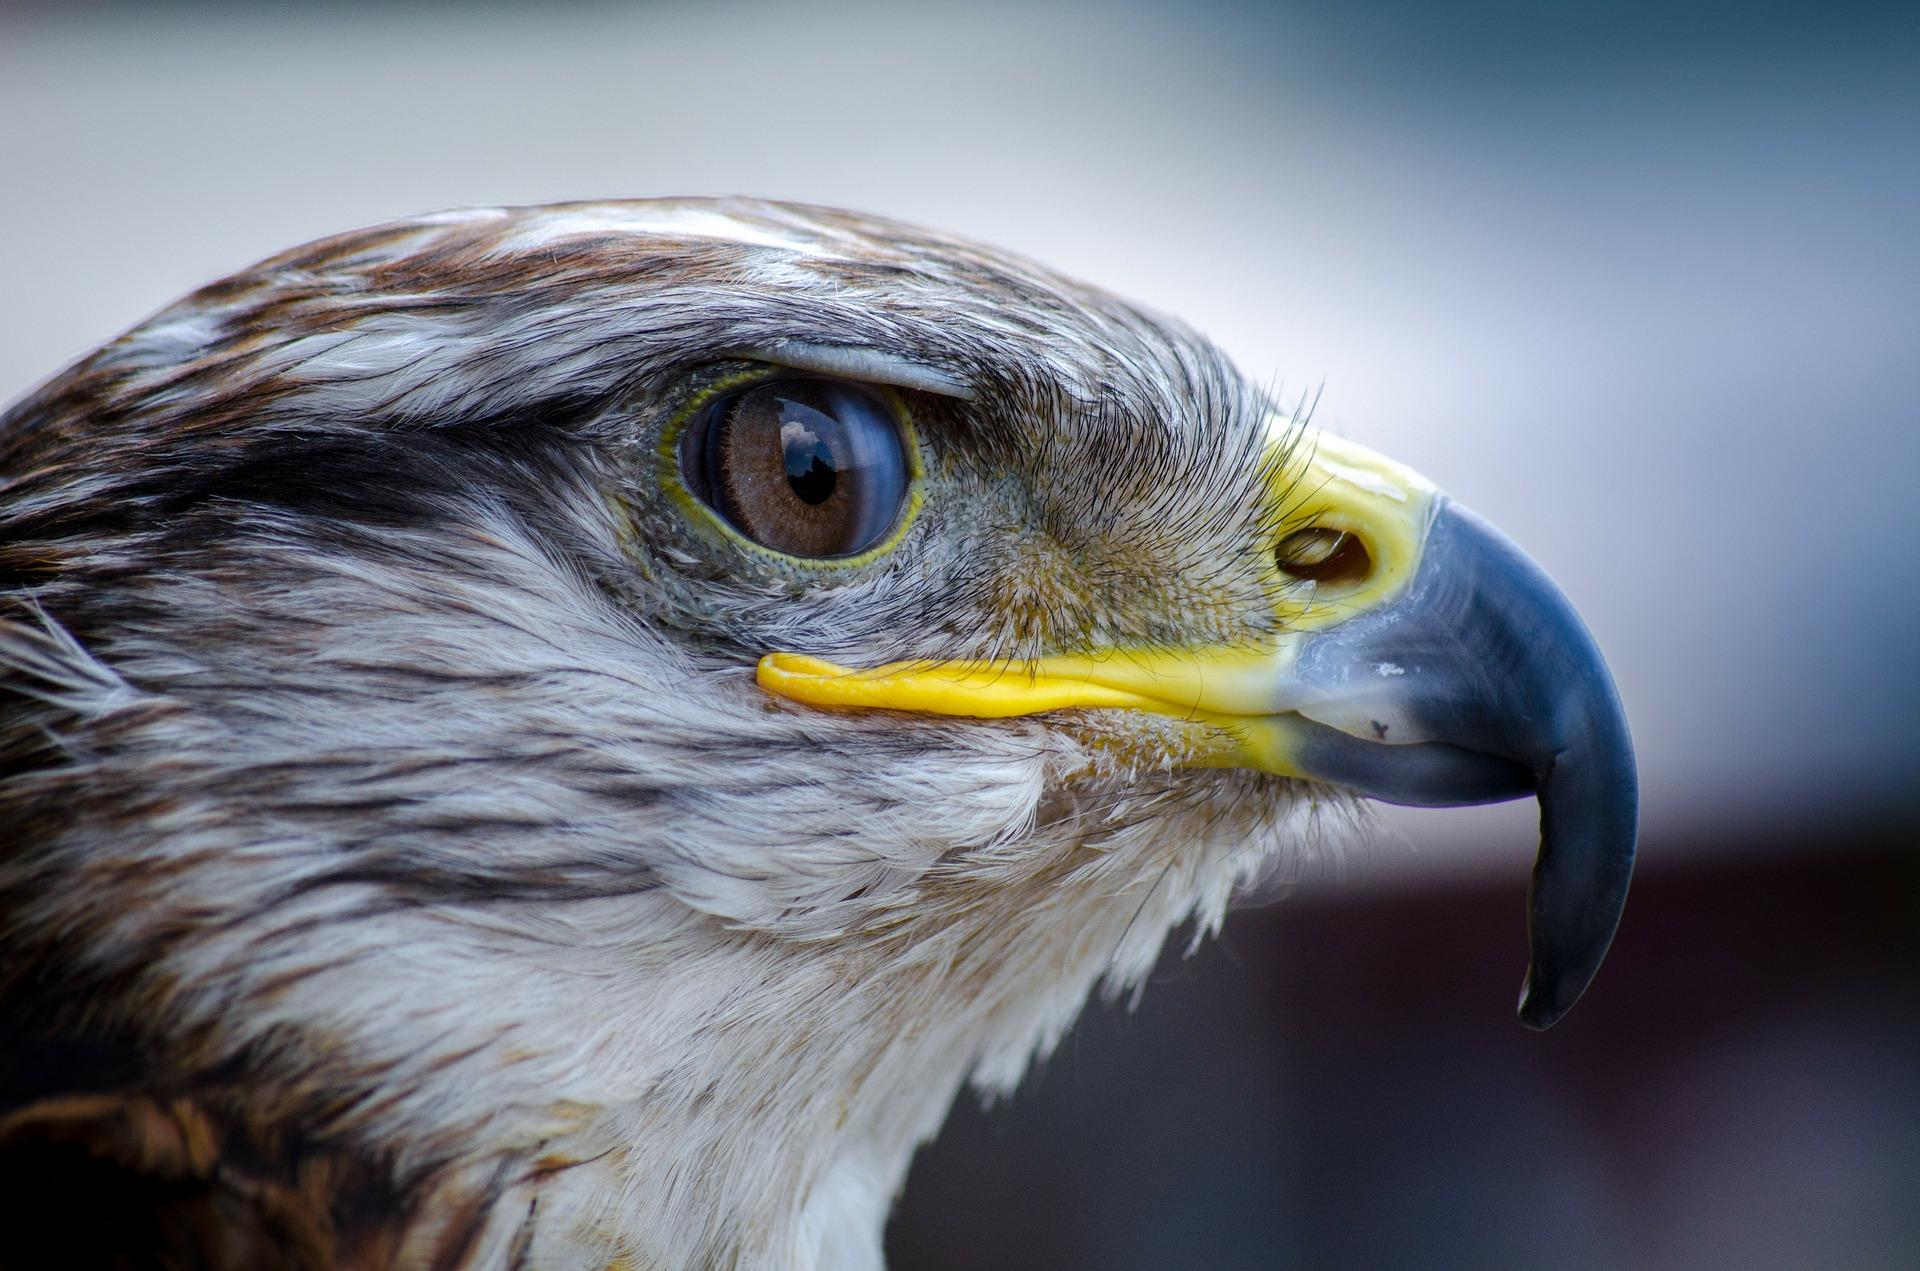 Claim over alleged agreement for breeding of falcons in